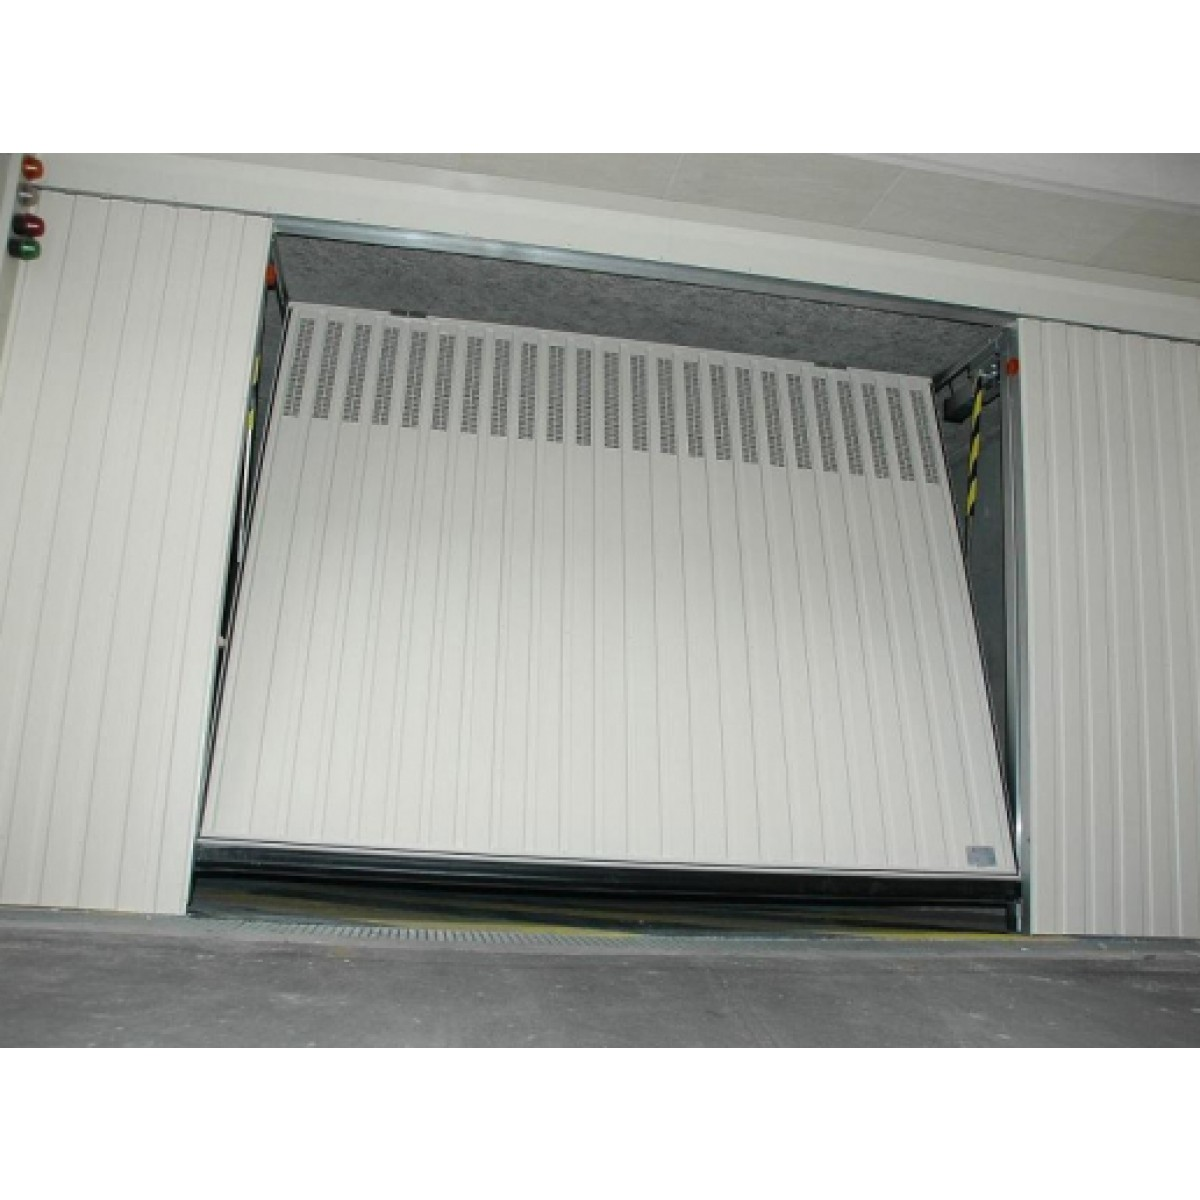 Portes de garage basculantes s400 a ro pluo portes de for Porte de garage collectif